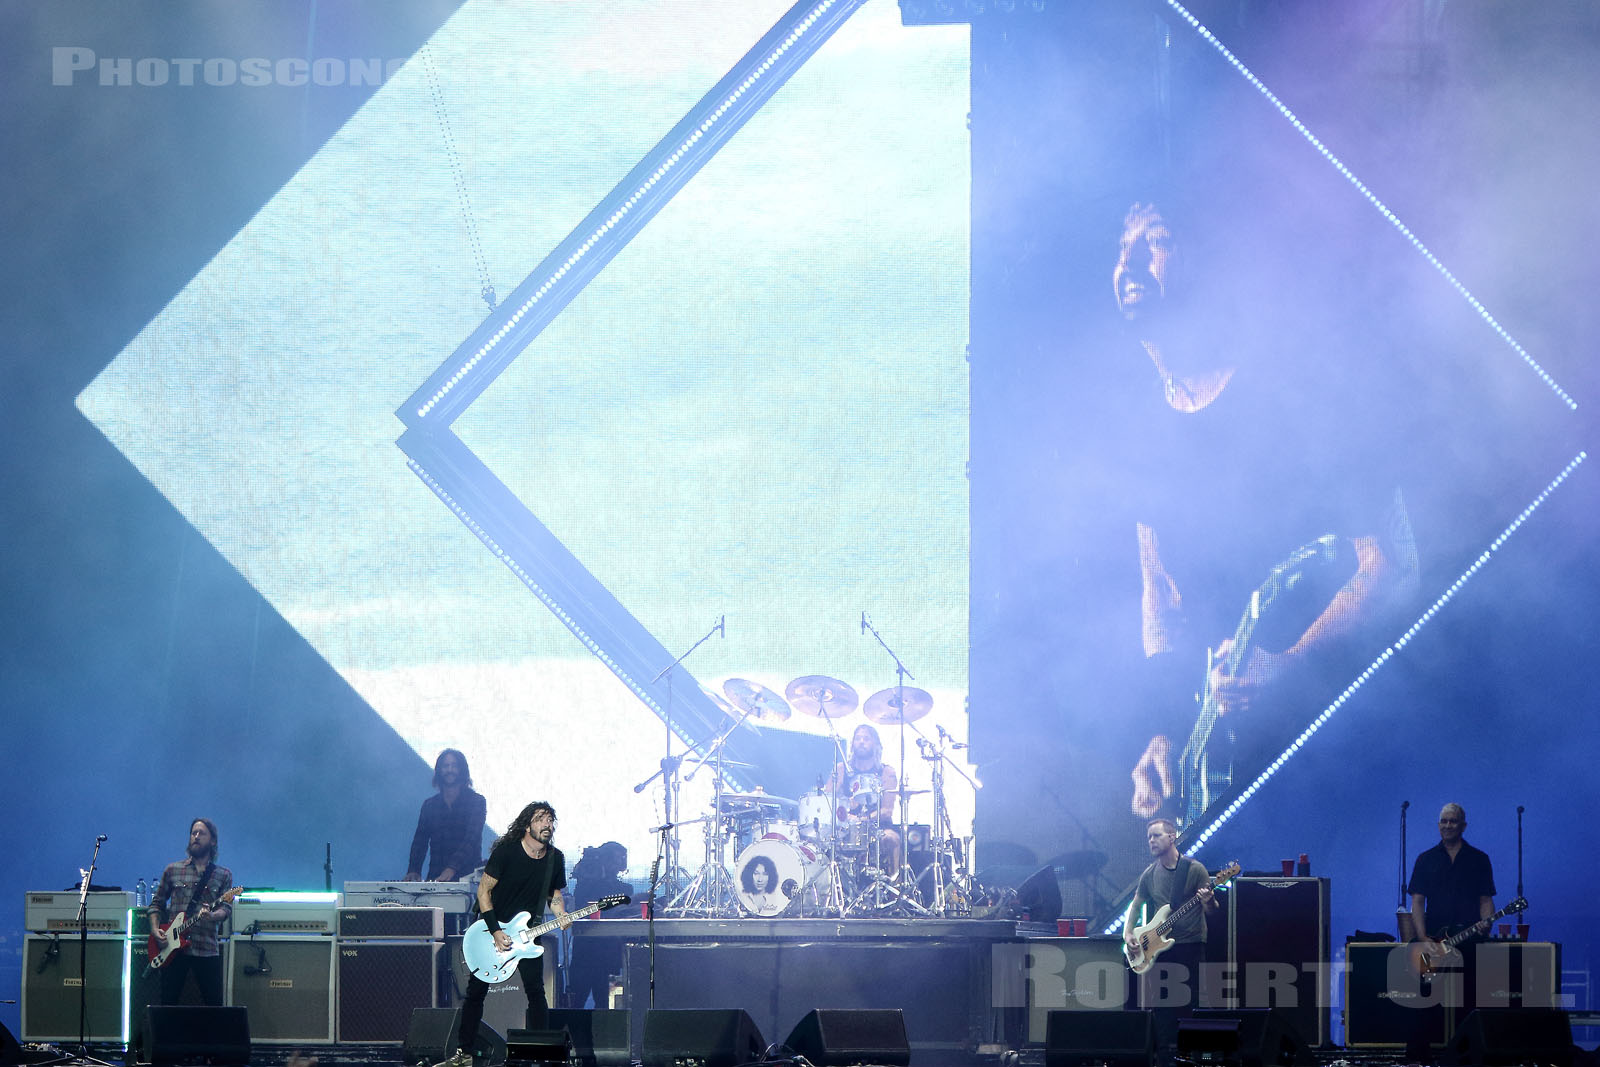 FOO FIGHTERS - 2018-06-17 - BRETIGNY-SUR-ORGE - Base Aerienne 217 - Main Stage